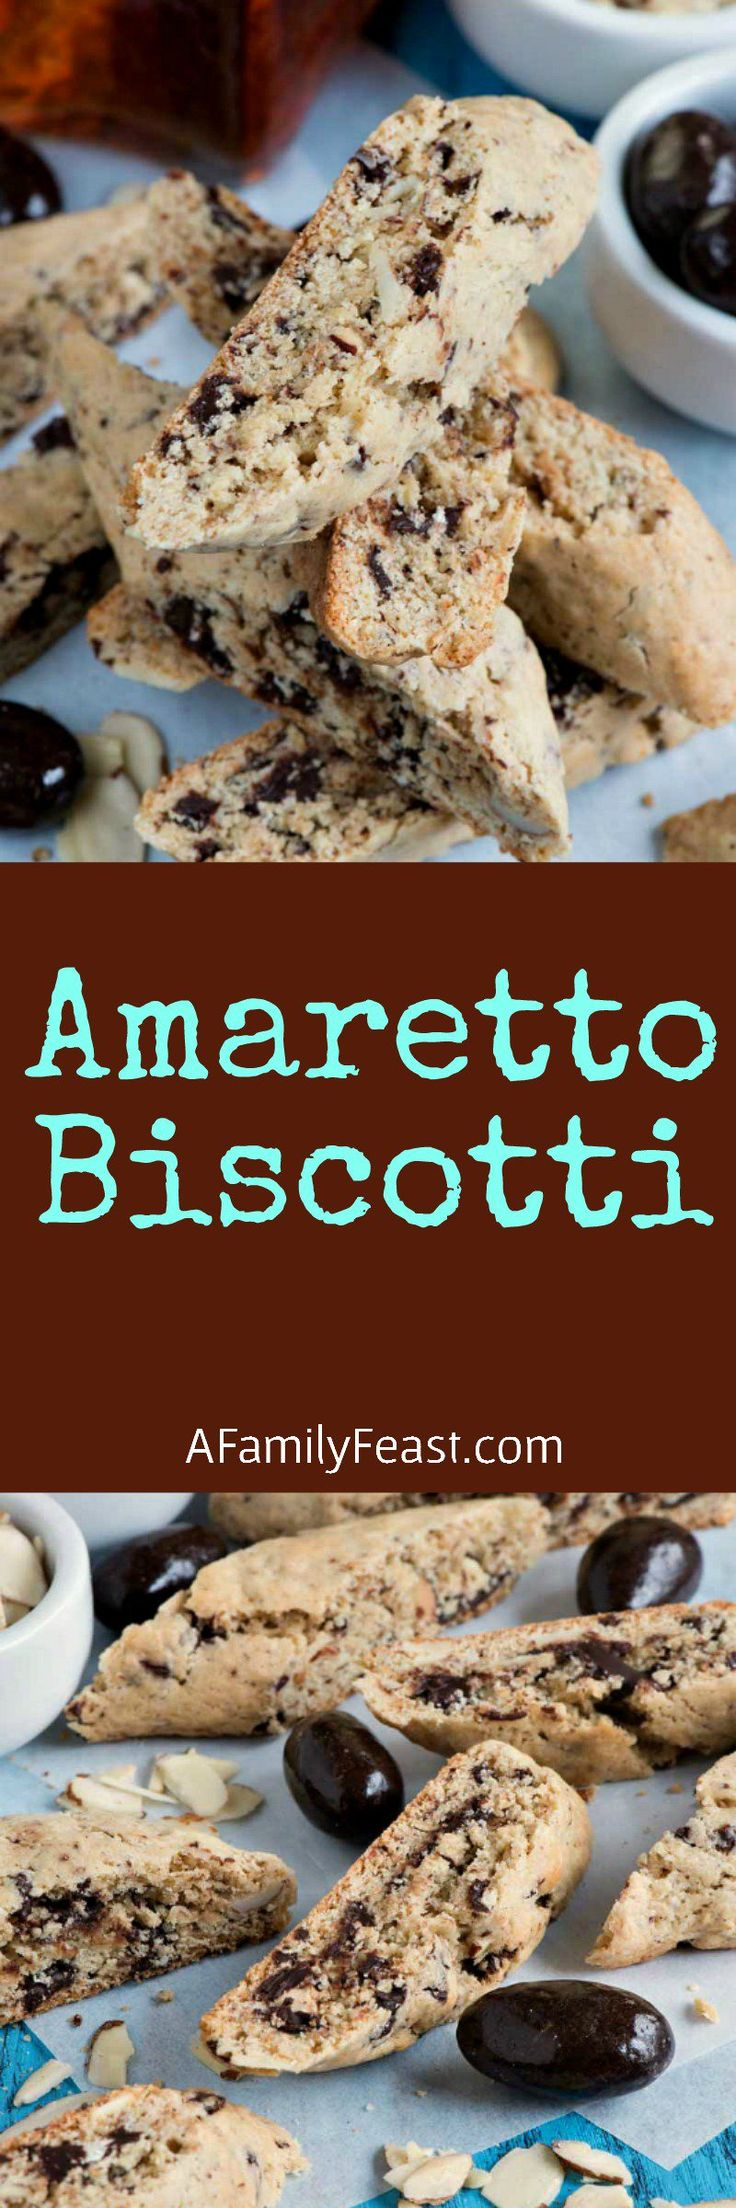 Amaretto Biscotti - Quick and easy to make with a uniquely delicious flavor. So good!